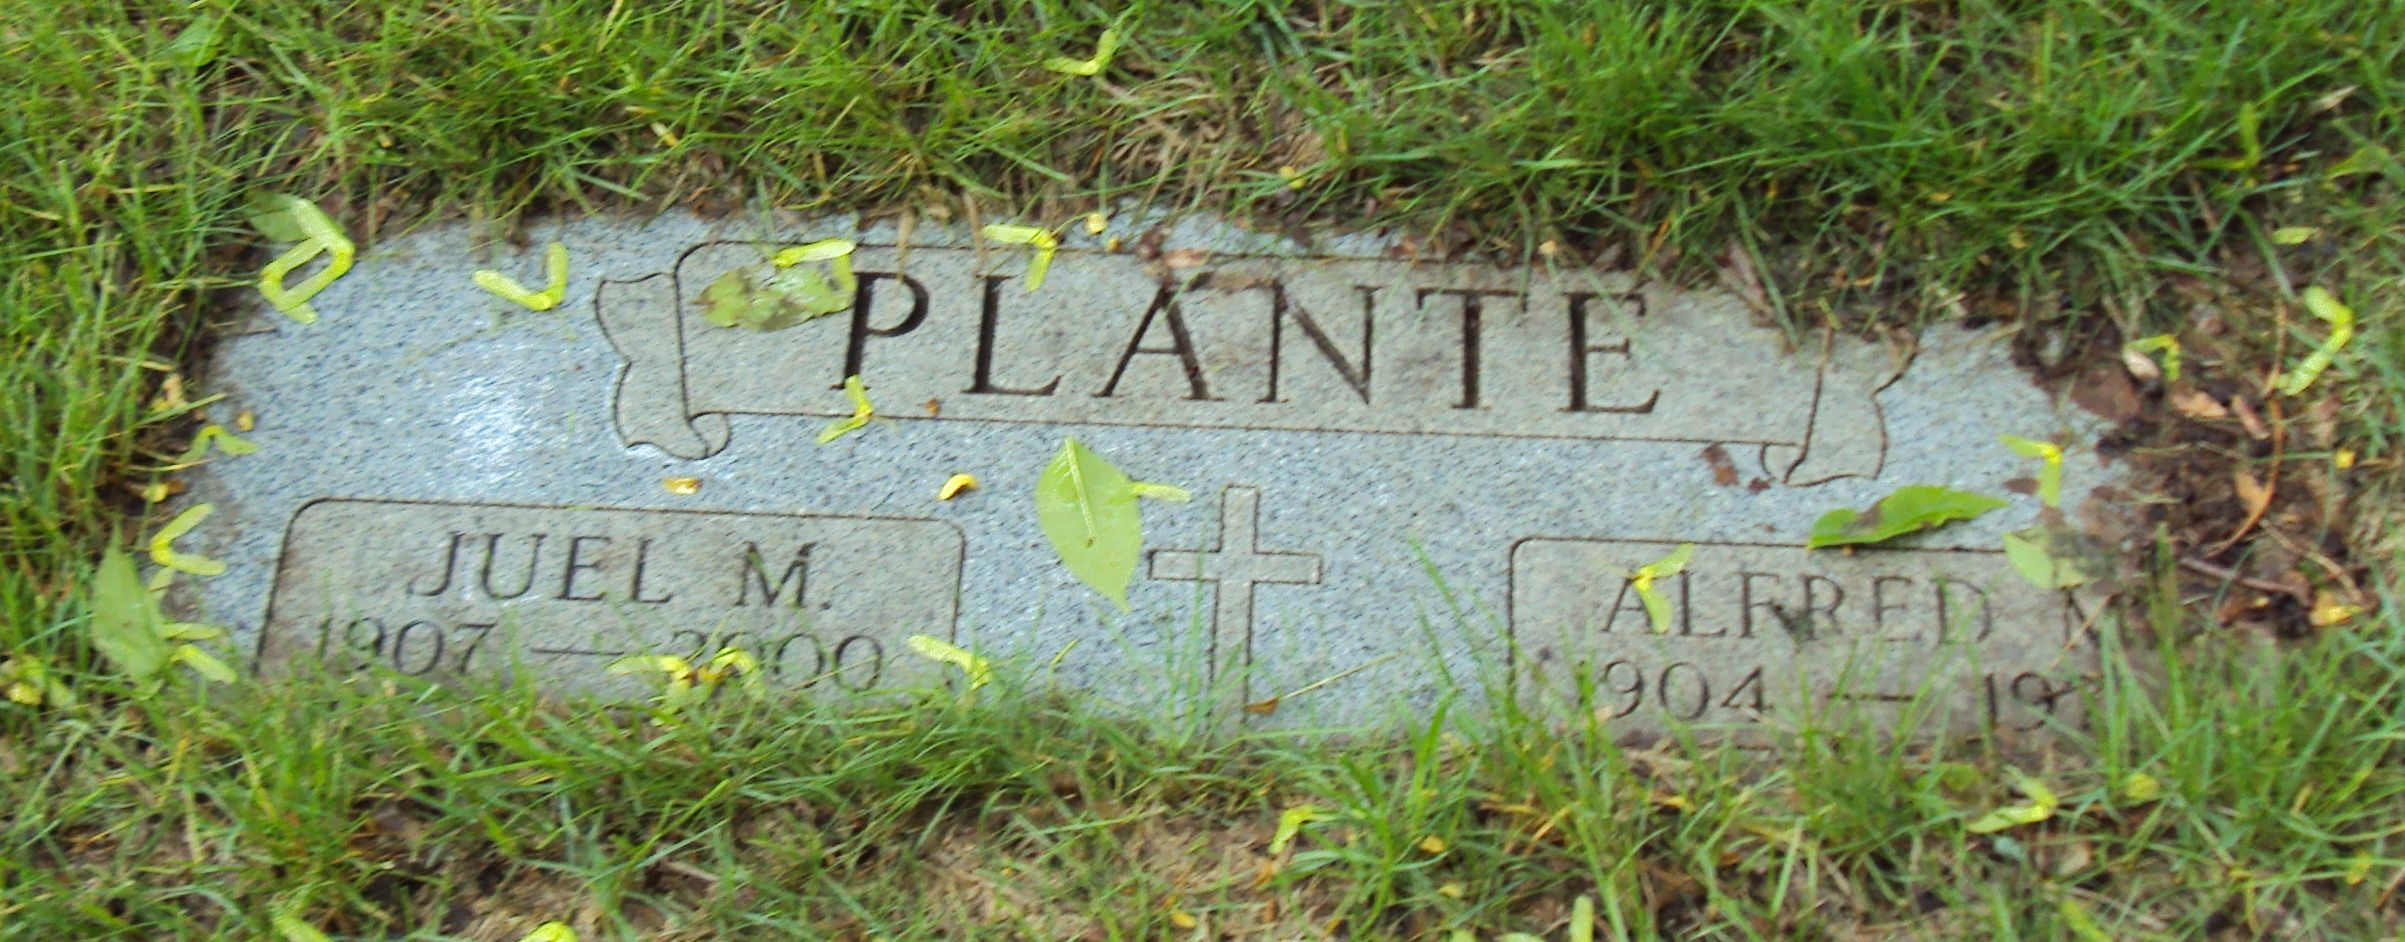 Grave Site of Juel and Alfred Montrose Plante